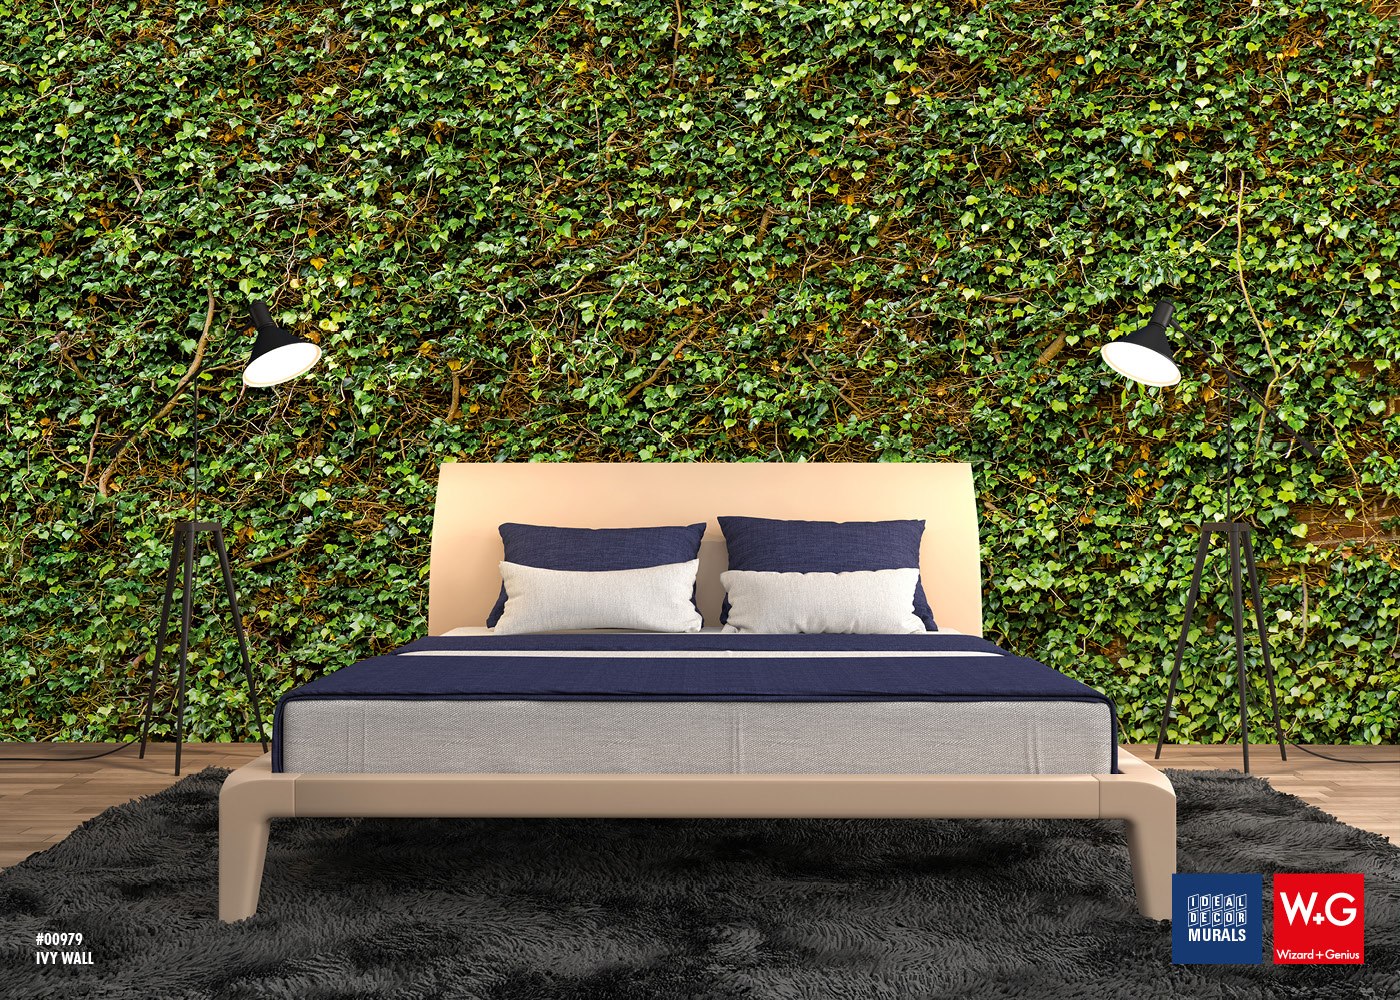 BEAUTIFY YOU ROOM with Ivy Wall Photomural